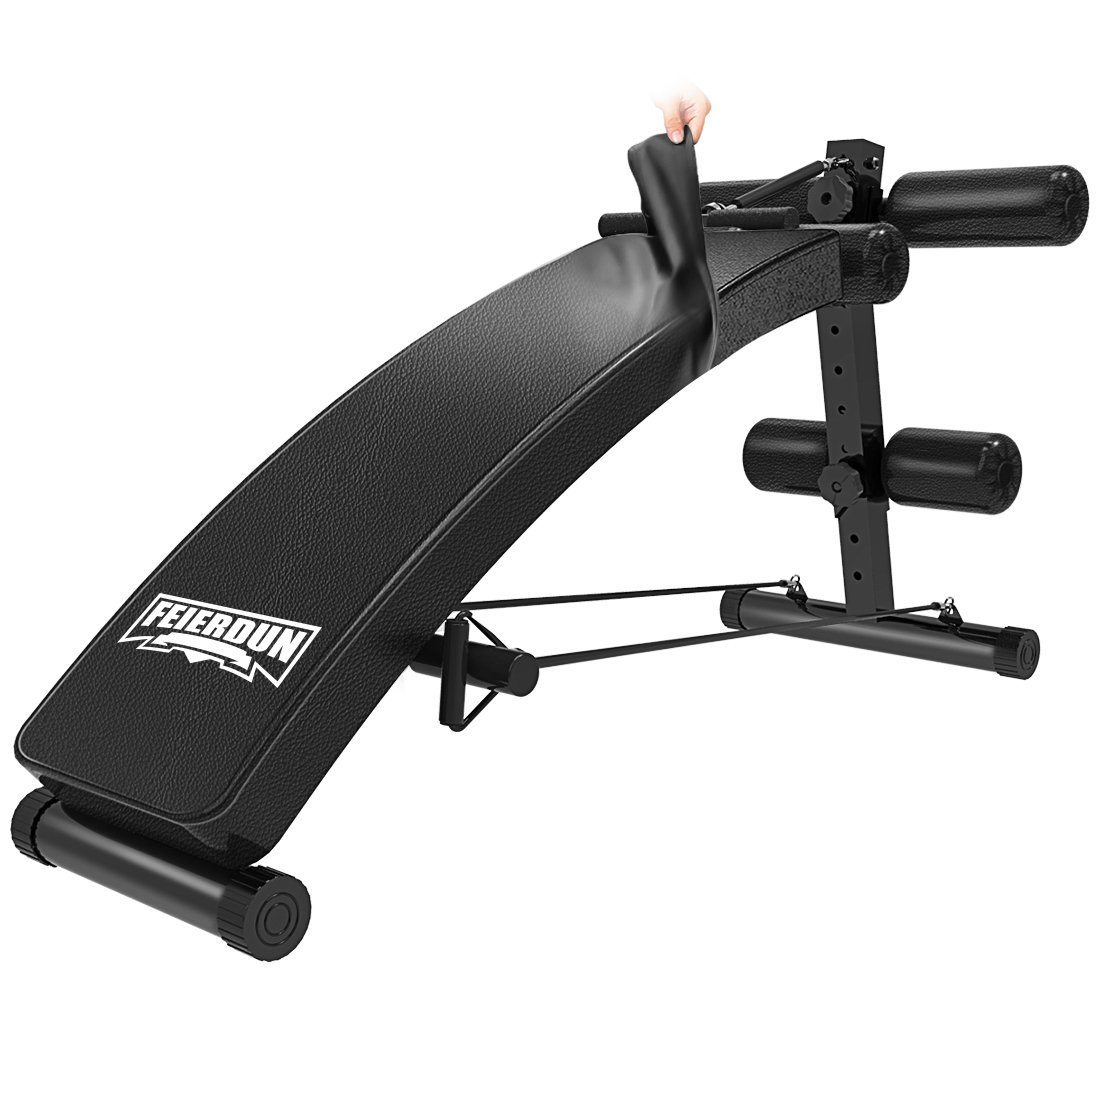 Sit Up AB Bench Incline Decline - FEIERDUN Adjustable Workout Sit-up Bench with Replaceable Leather Cover,Slant Crunch Board abs Benches